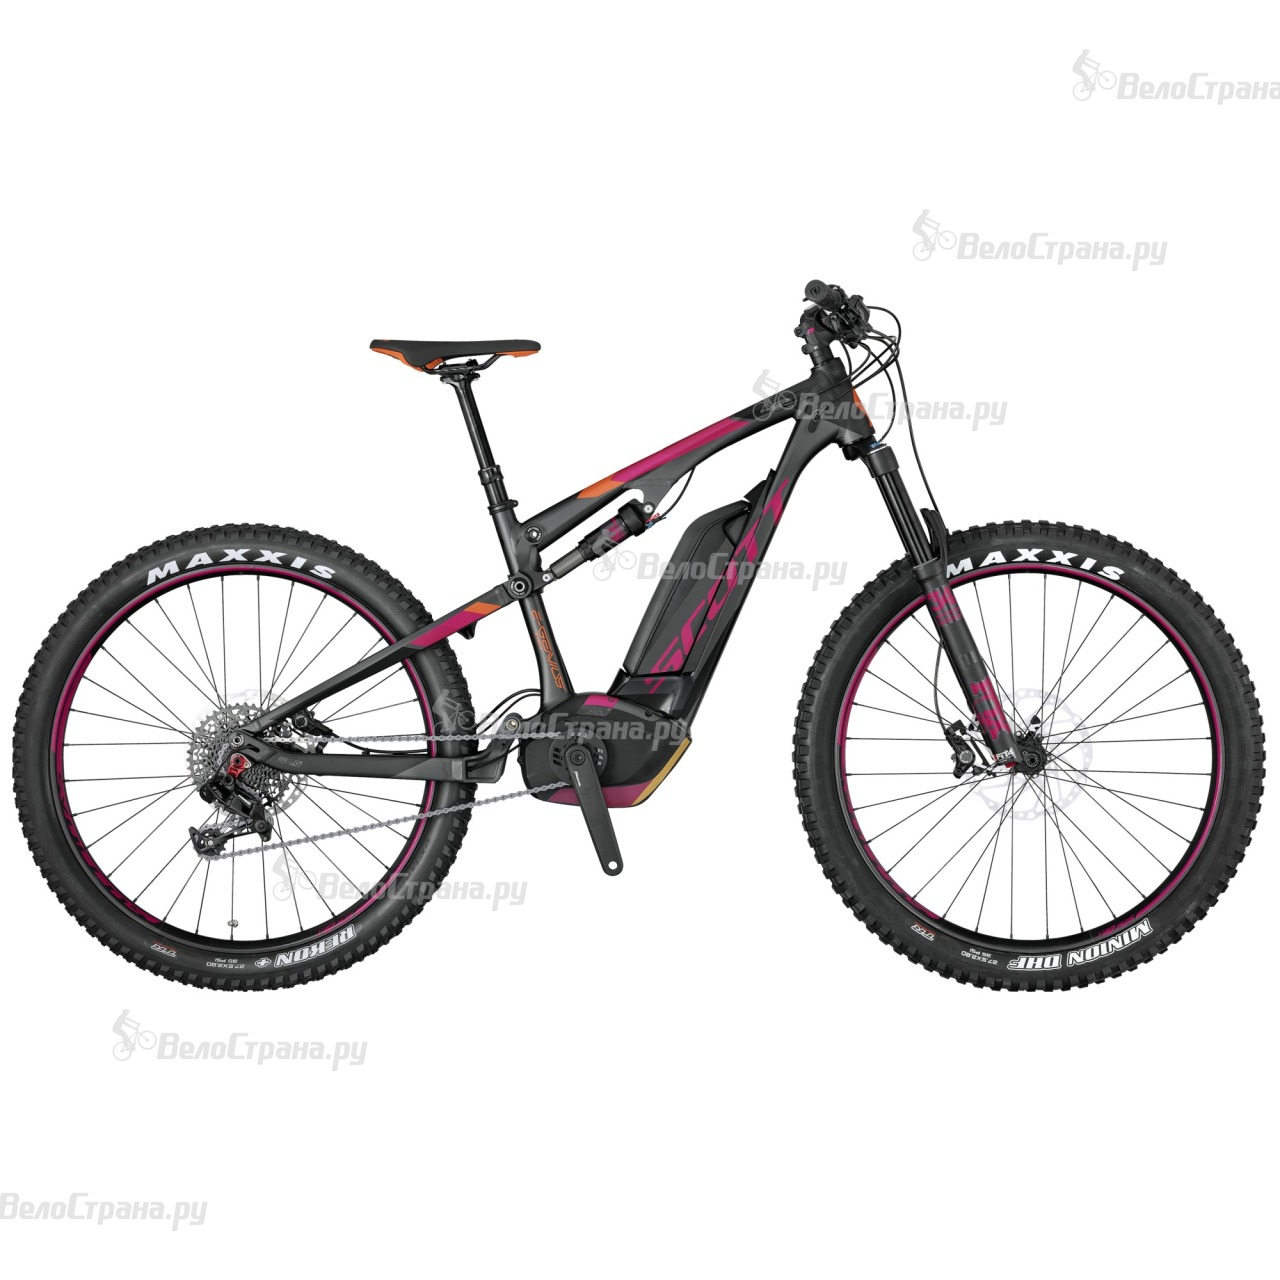 Велосипед Scott E-Contessa Genius 720 Plus (2017) scott contessa genius 700 2016